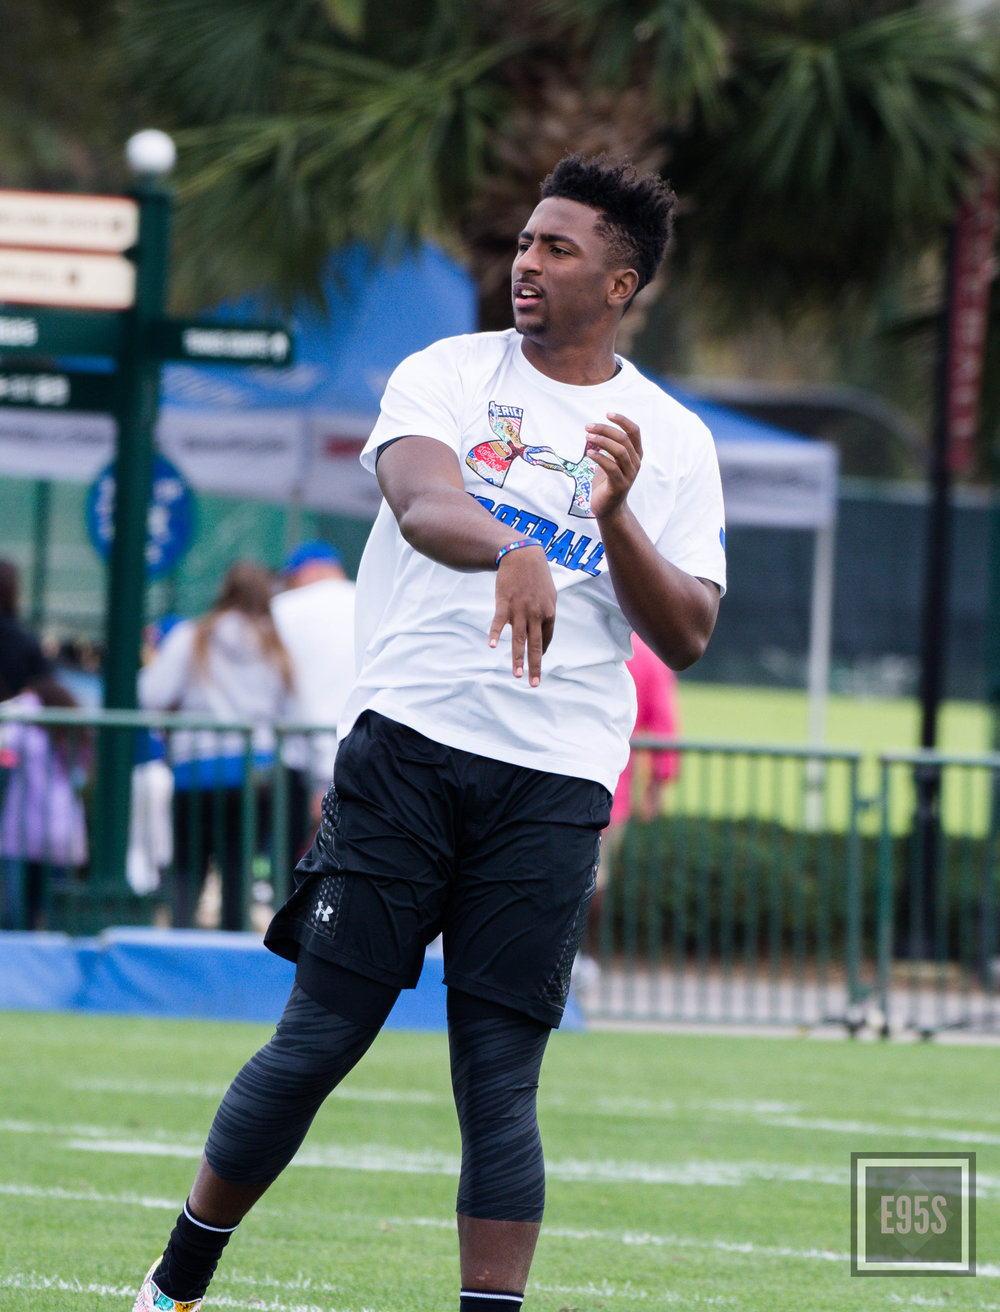 Kasim Hill throws passes during the 2017 UA All-American practice. Hill also participated in the skills challenge. (Jaharia Dixon/ East 95th Street Photography)